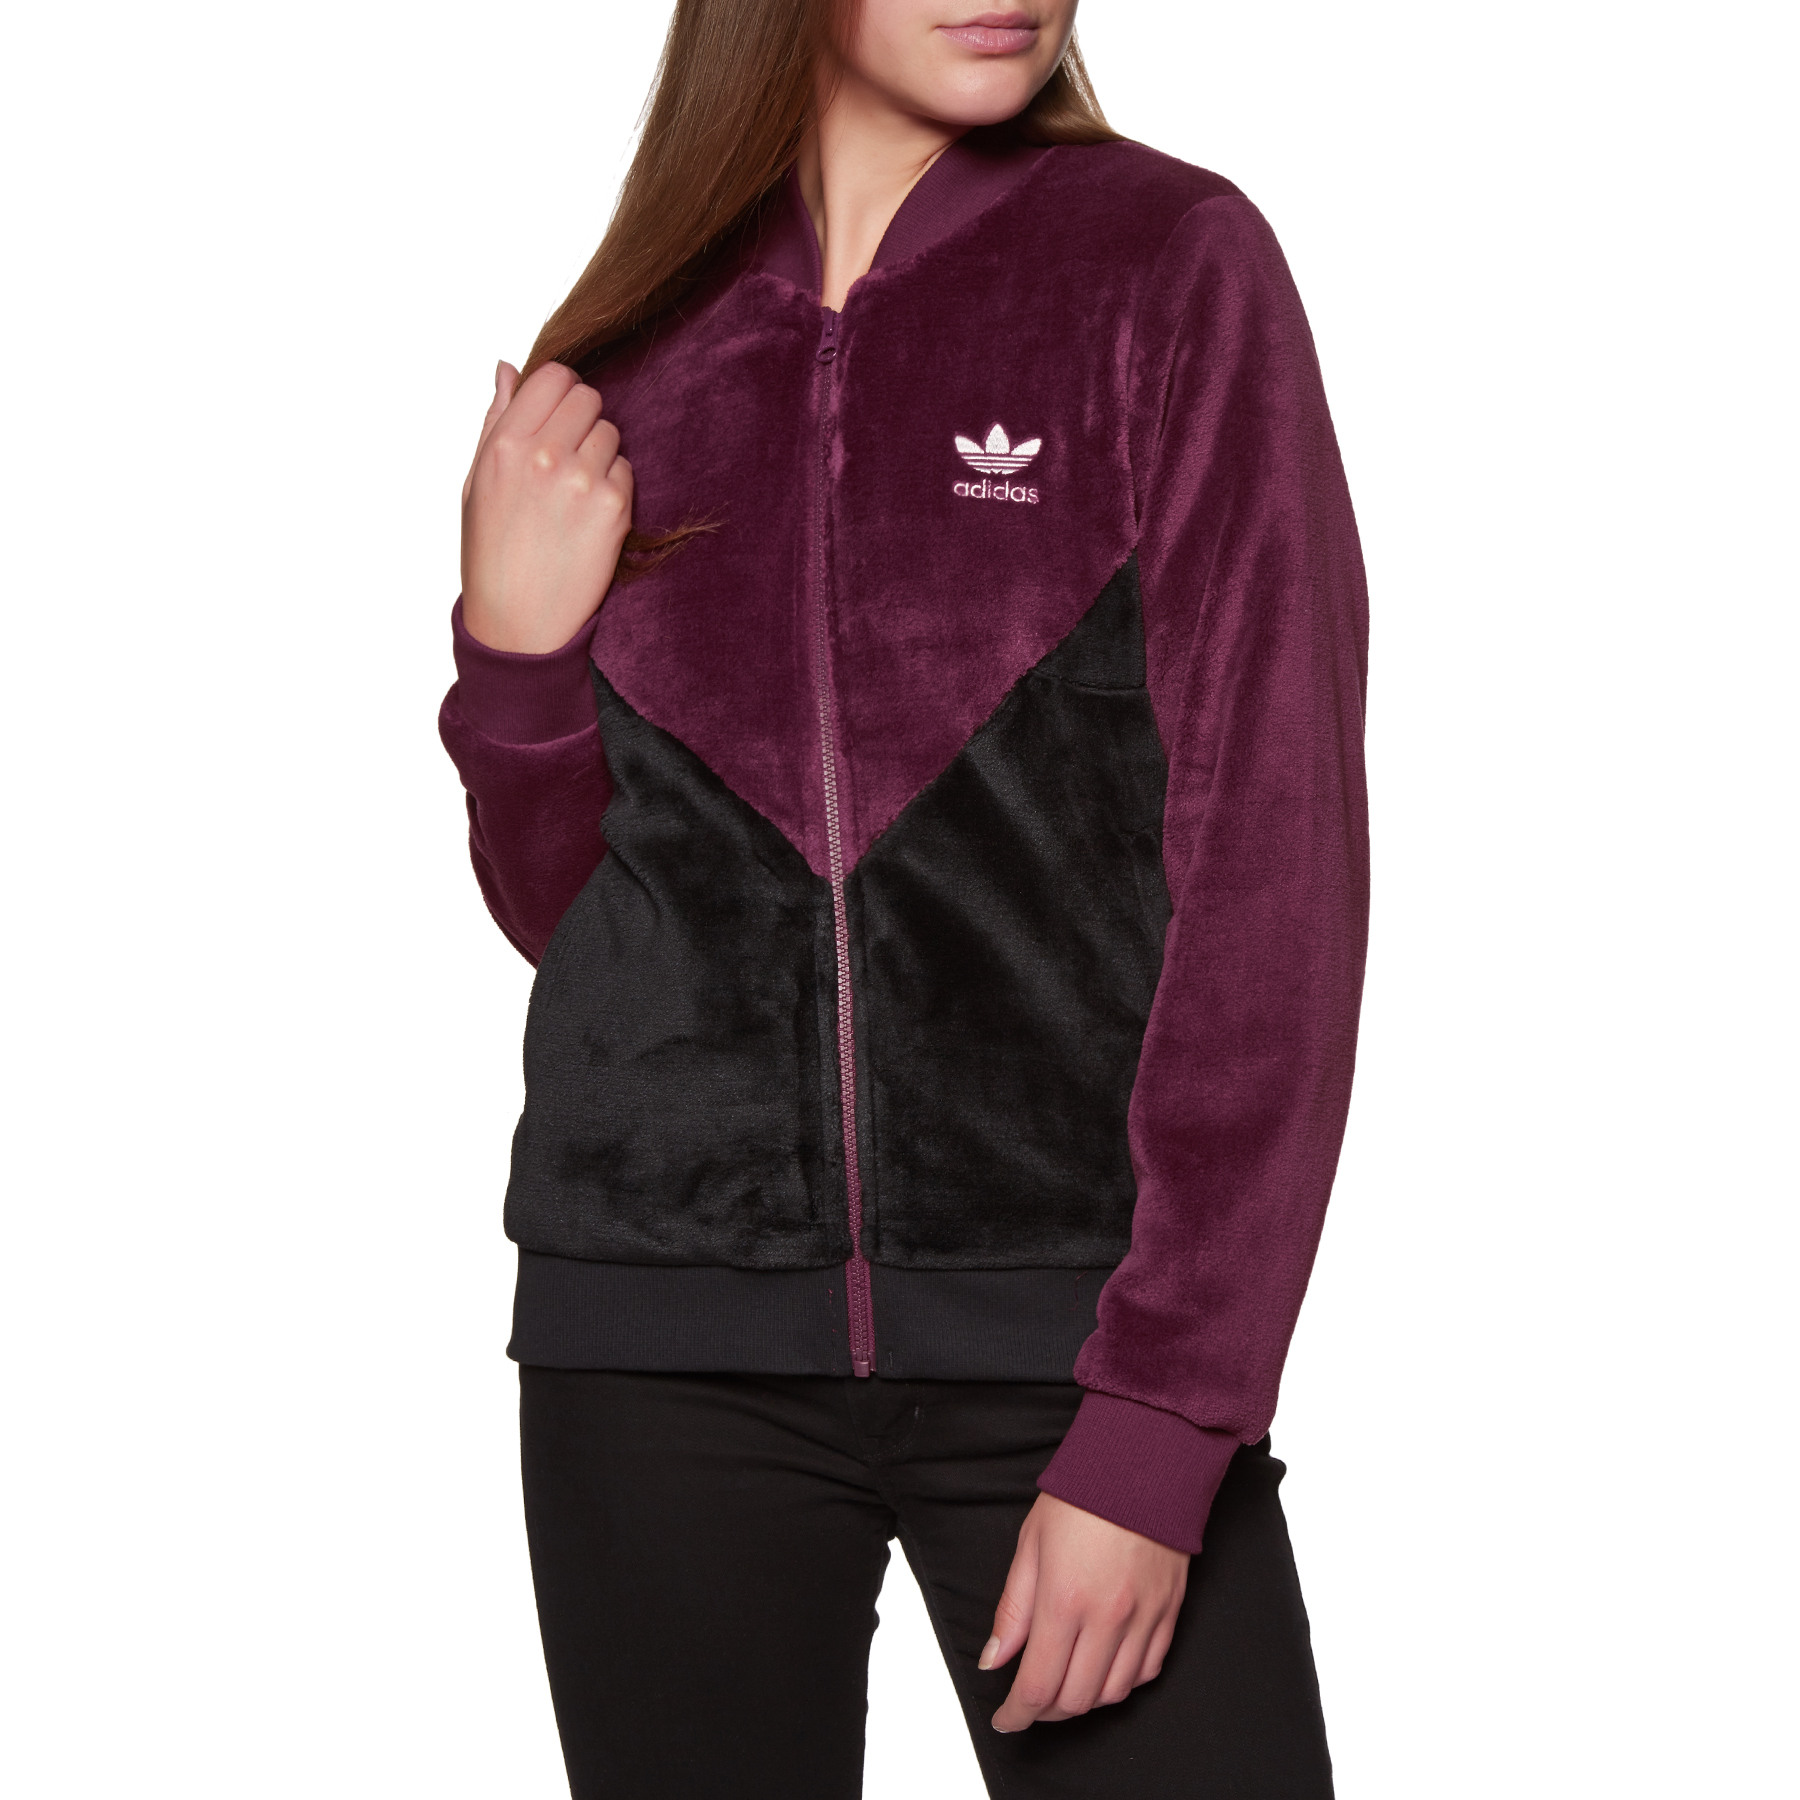 adidas originals clrdo fleece zip-front track jacket